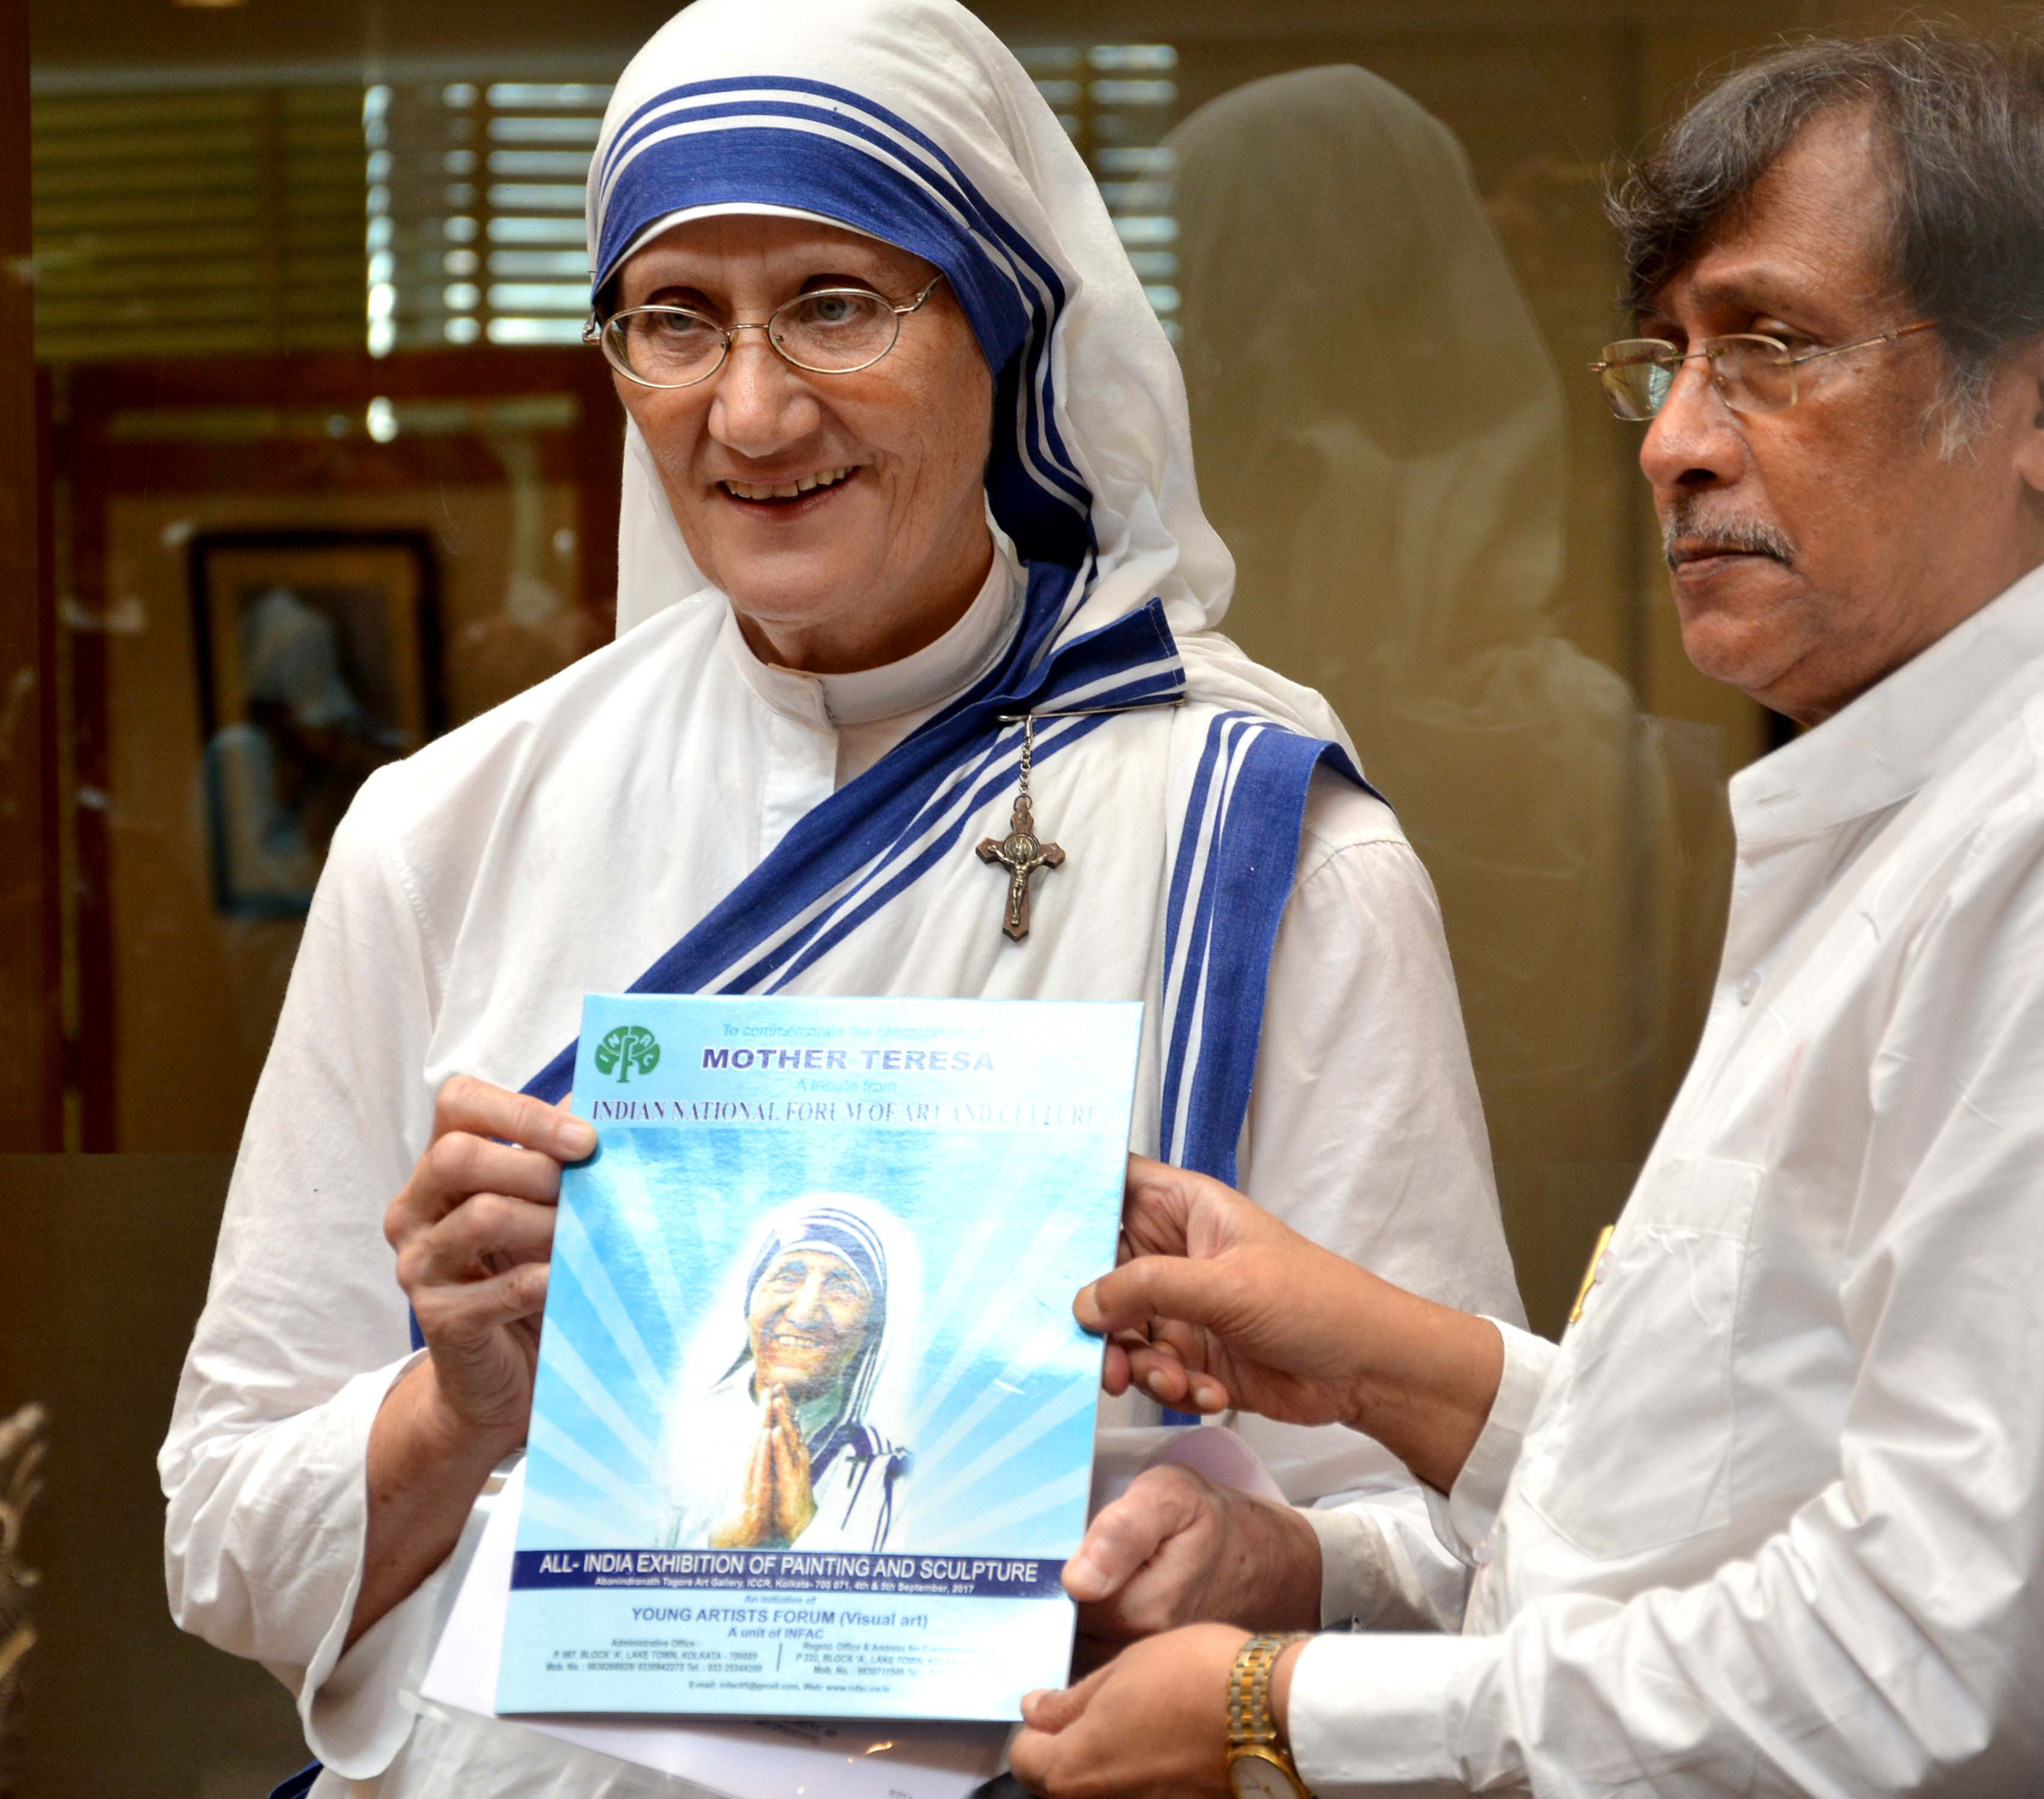 With Sister Nirmala of Missioneries of Charity